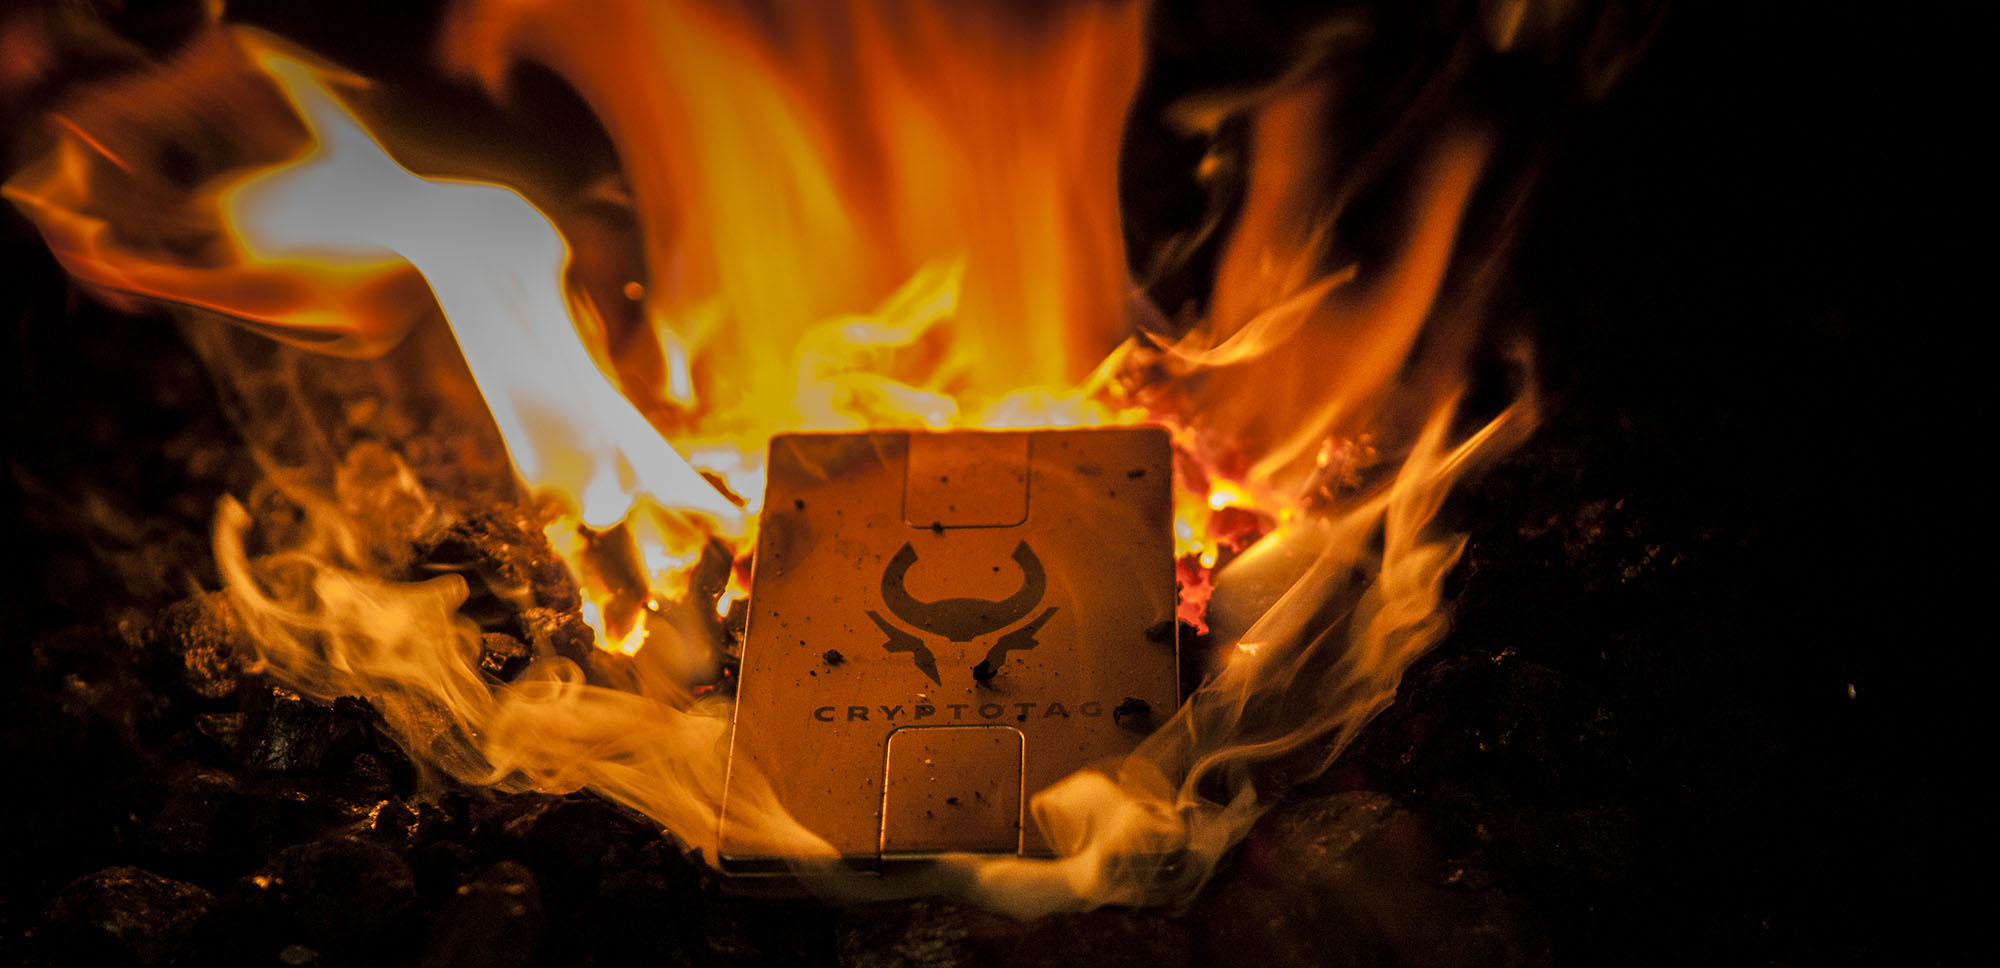 CRYPTOTAG in fire pit